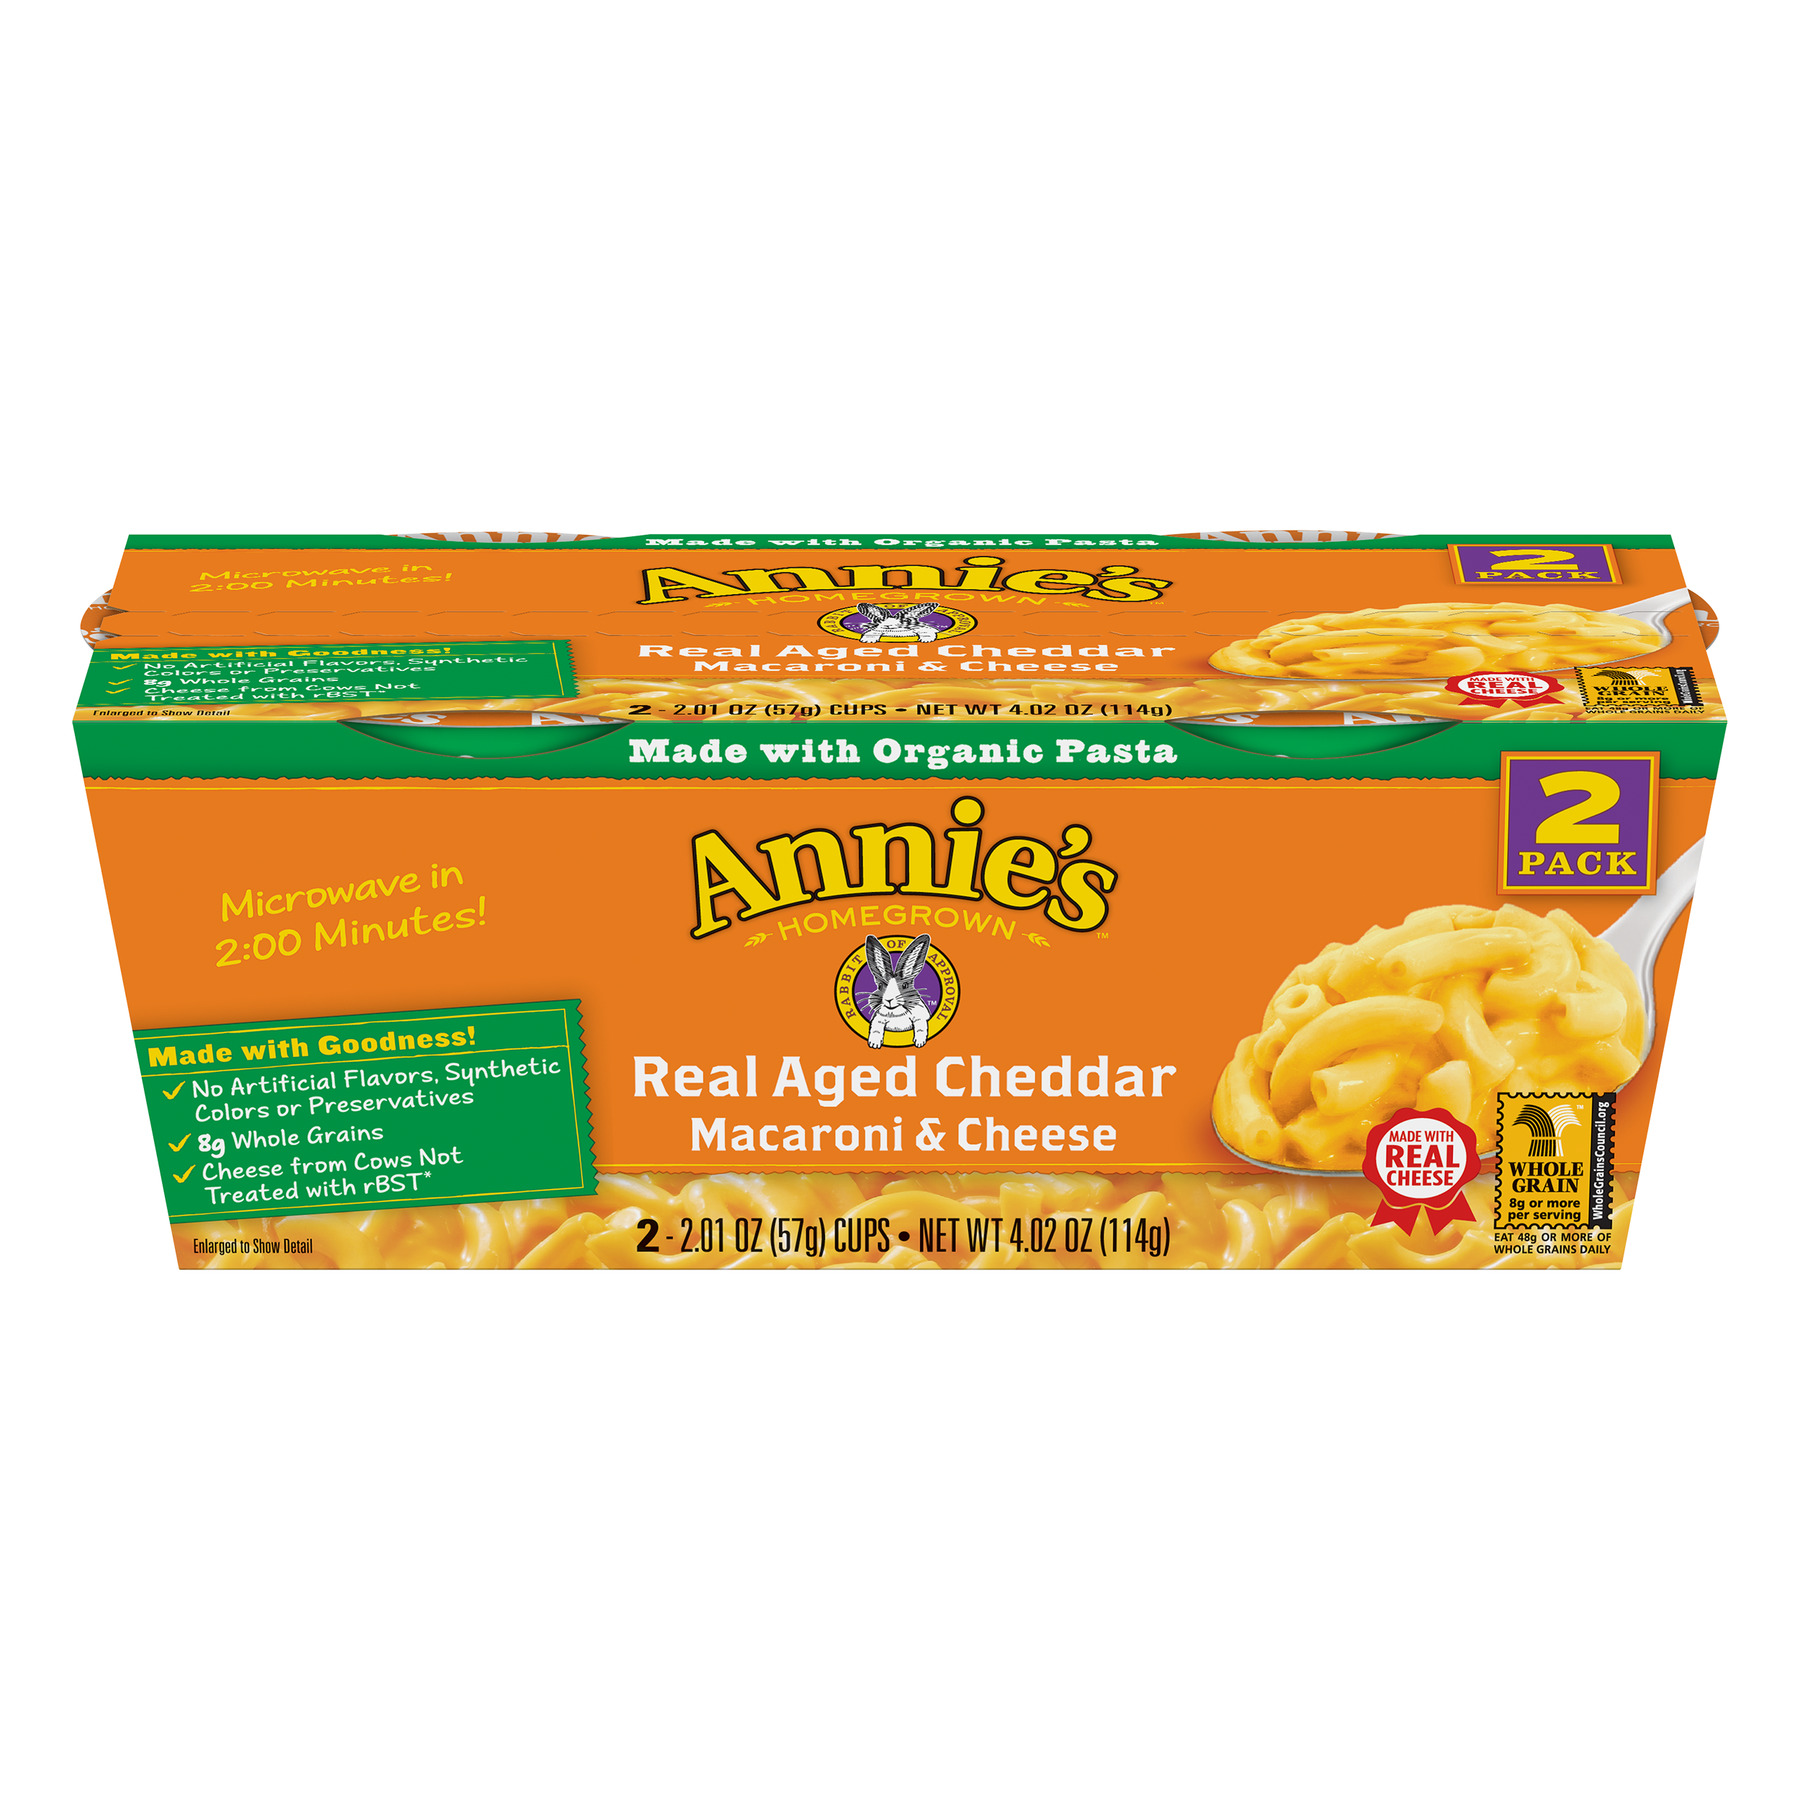 Annie's Real Aged Cheddar Macaroni and Cheese Micro Cup, 4.02 oz